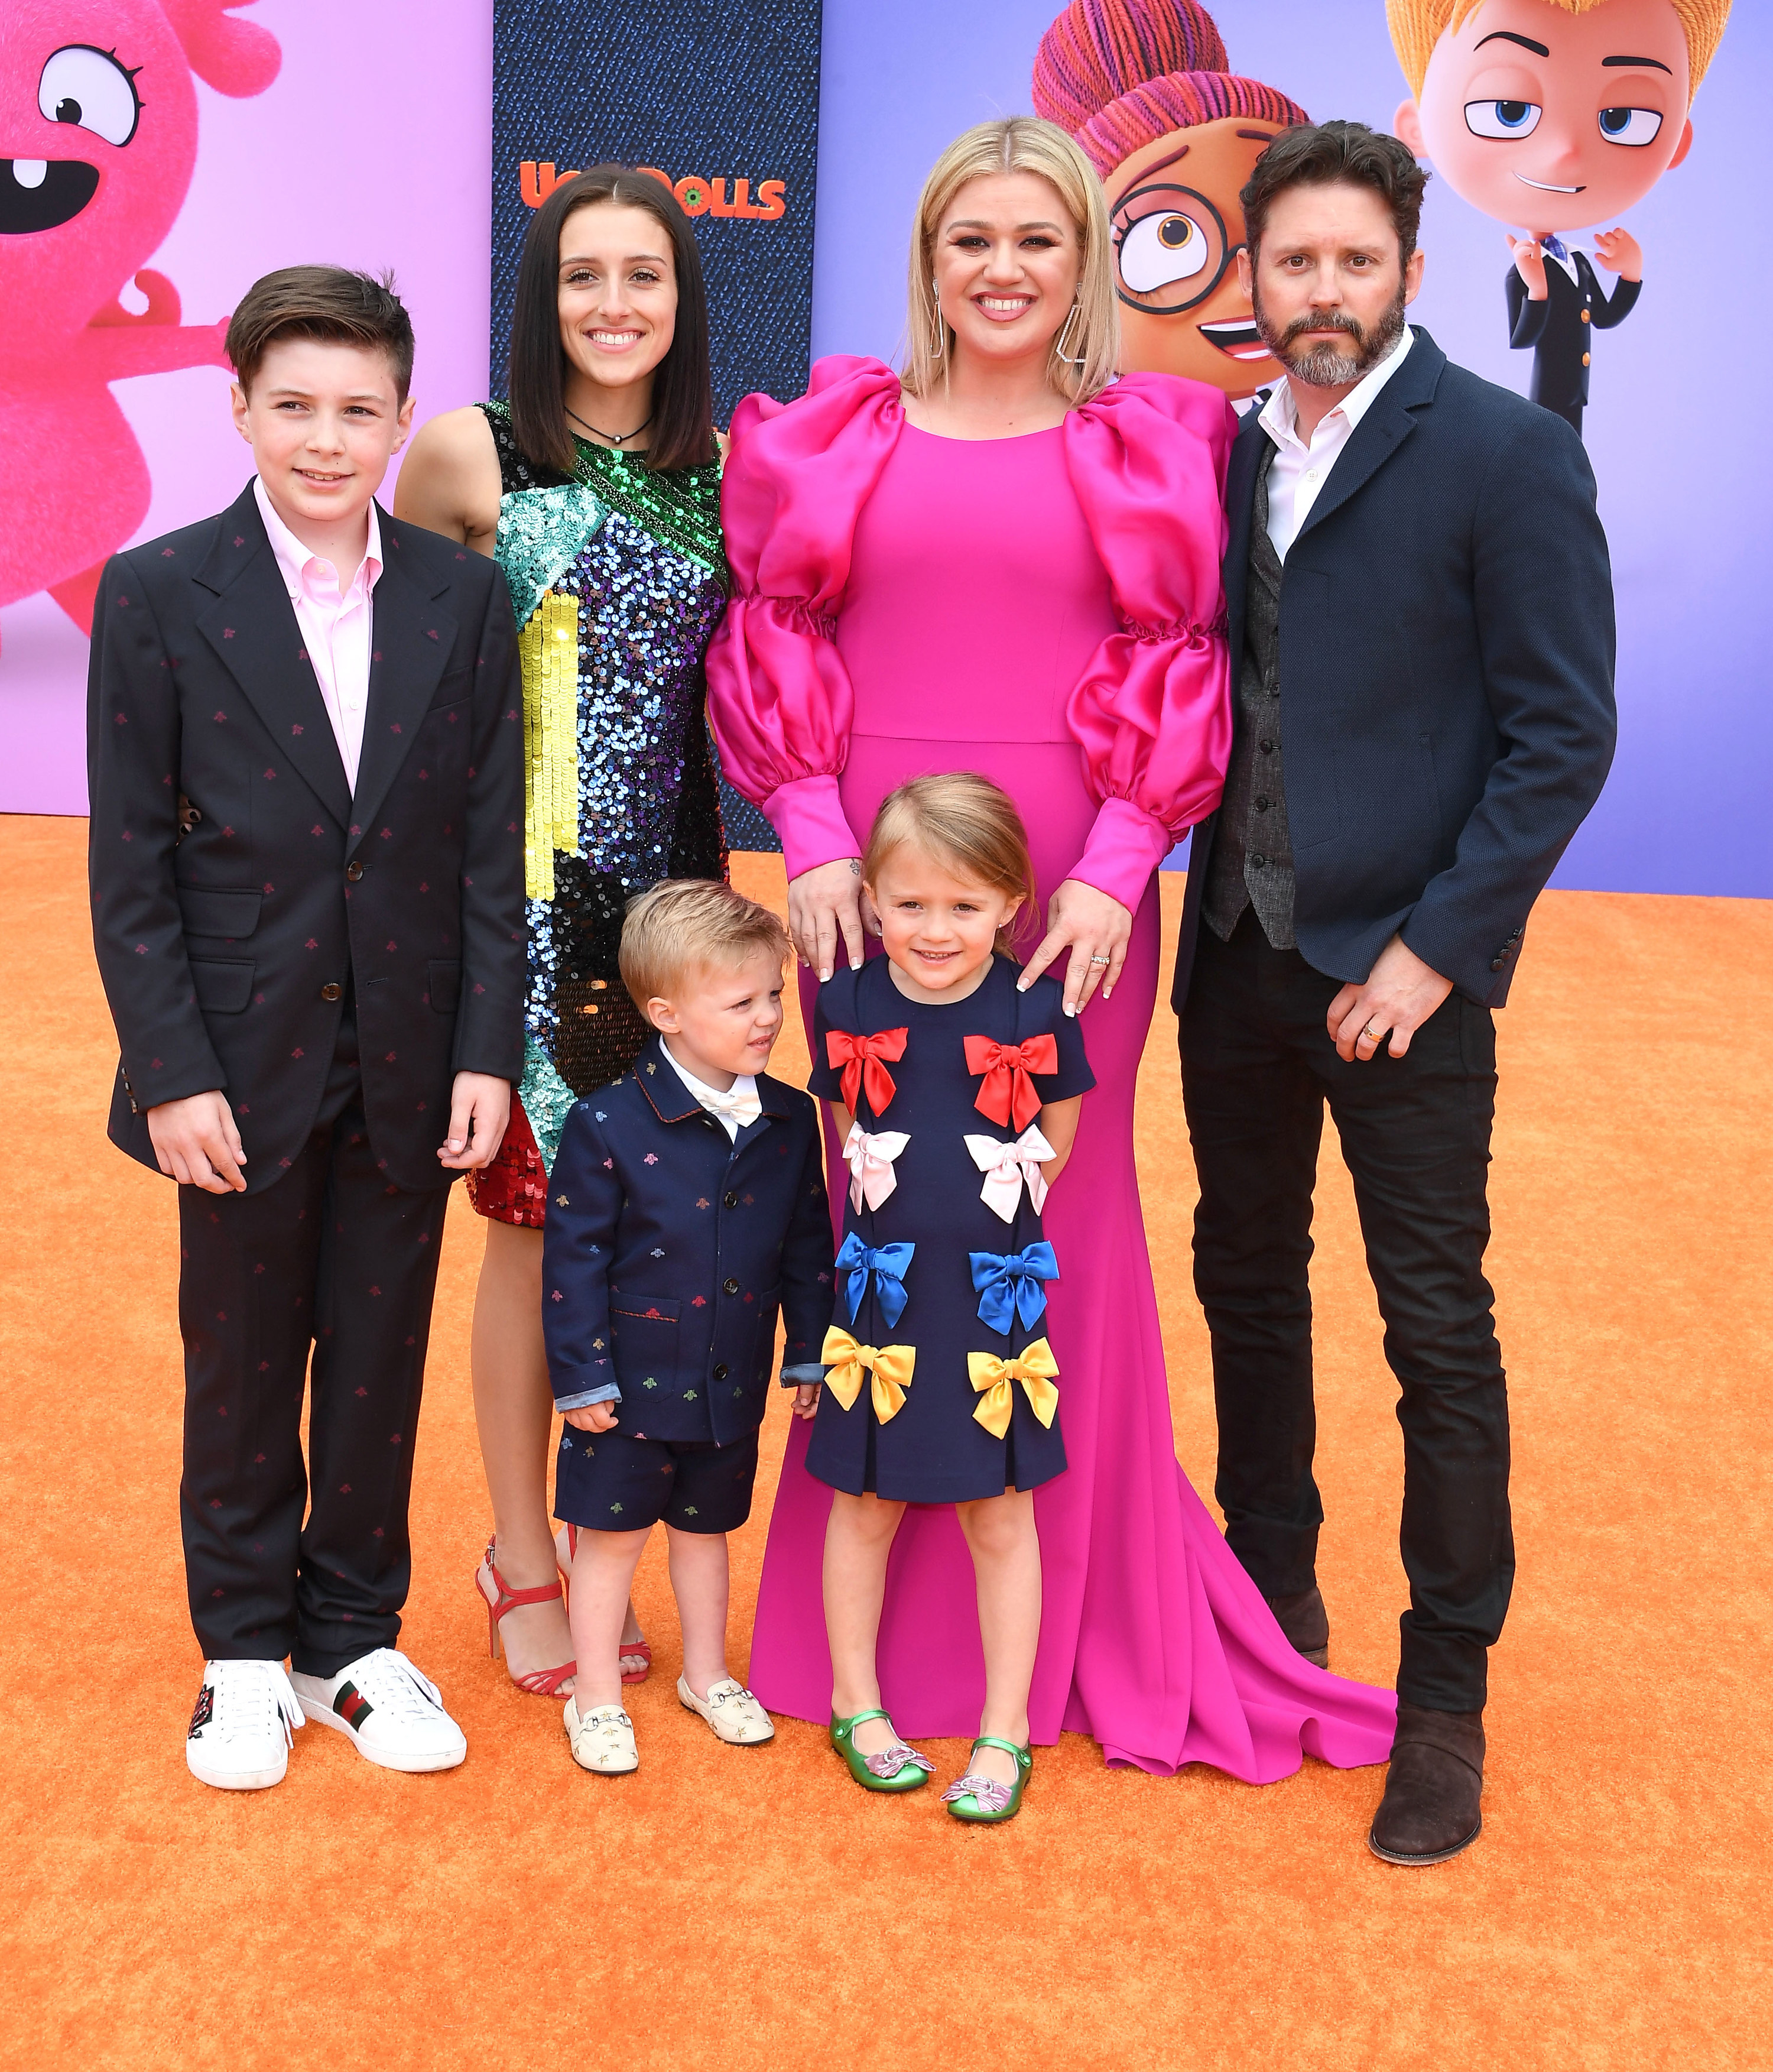 Clarkson with ex-husband Brandon Blackstock and their children at a press event